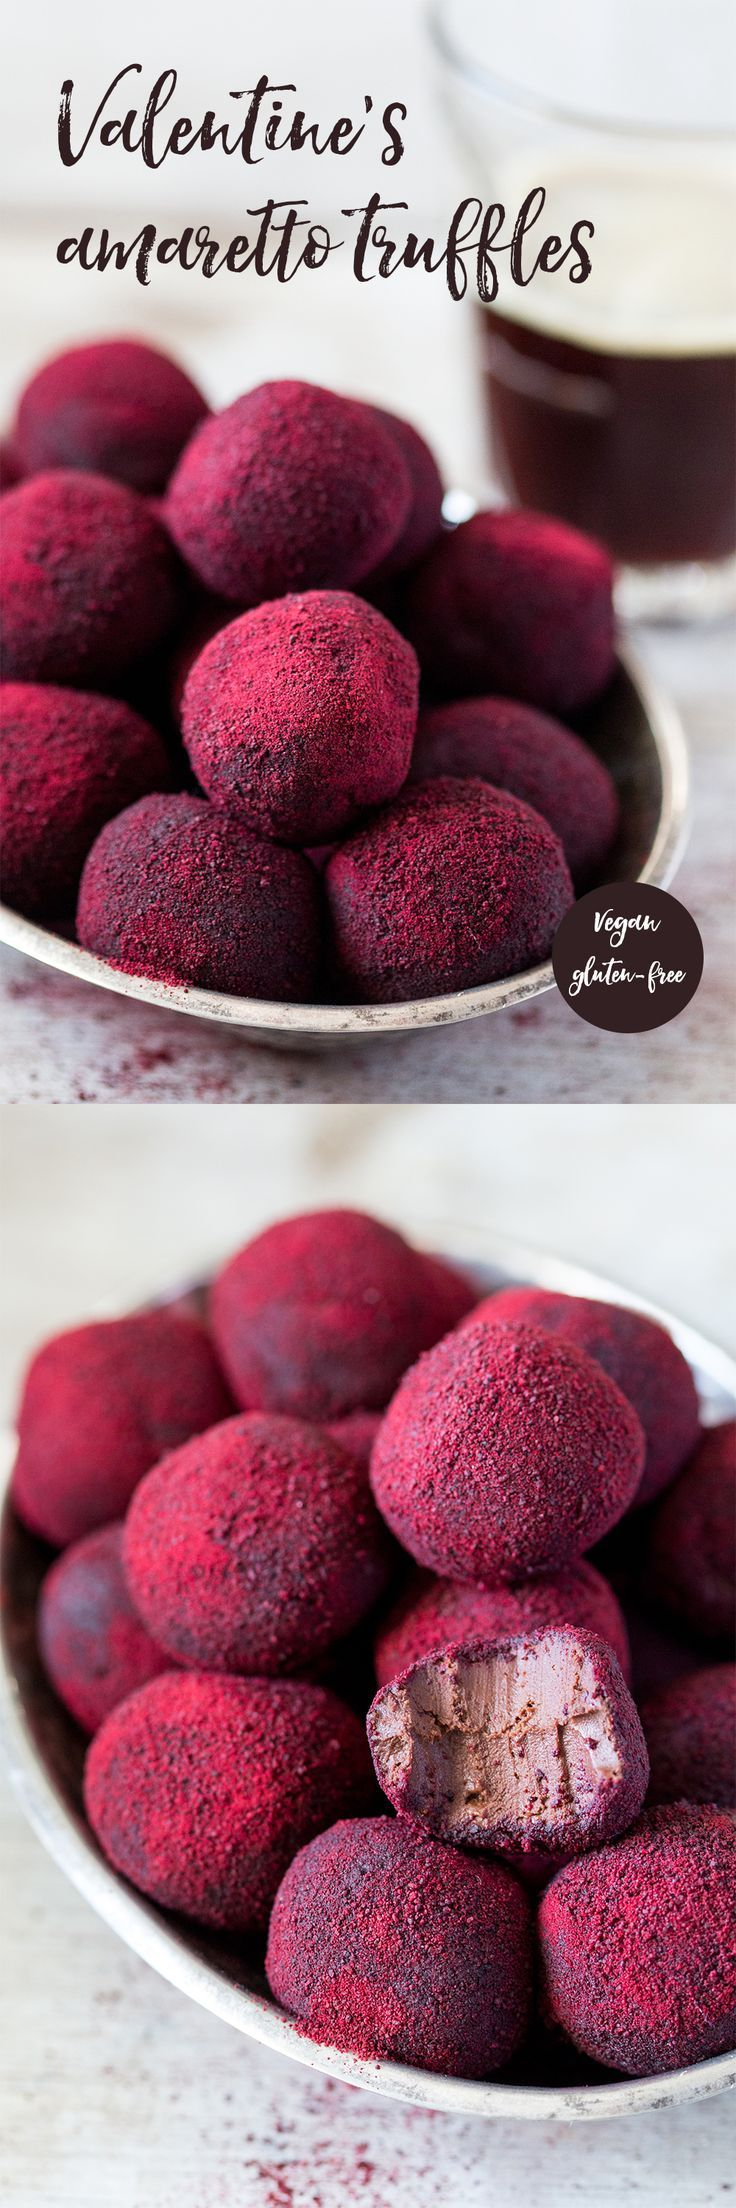 buy beetroot powder online at http://www.herbandspiceco.co.uk